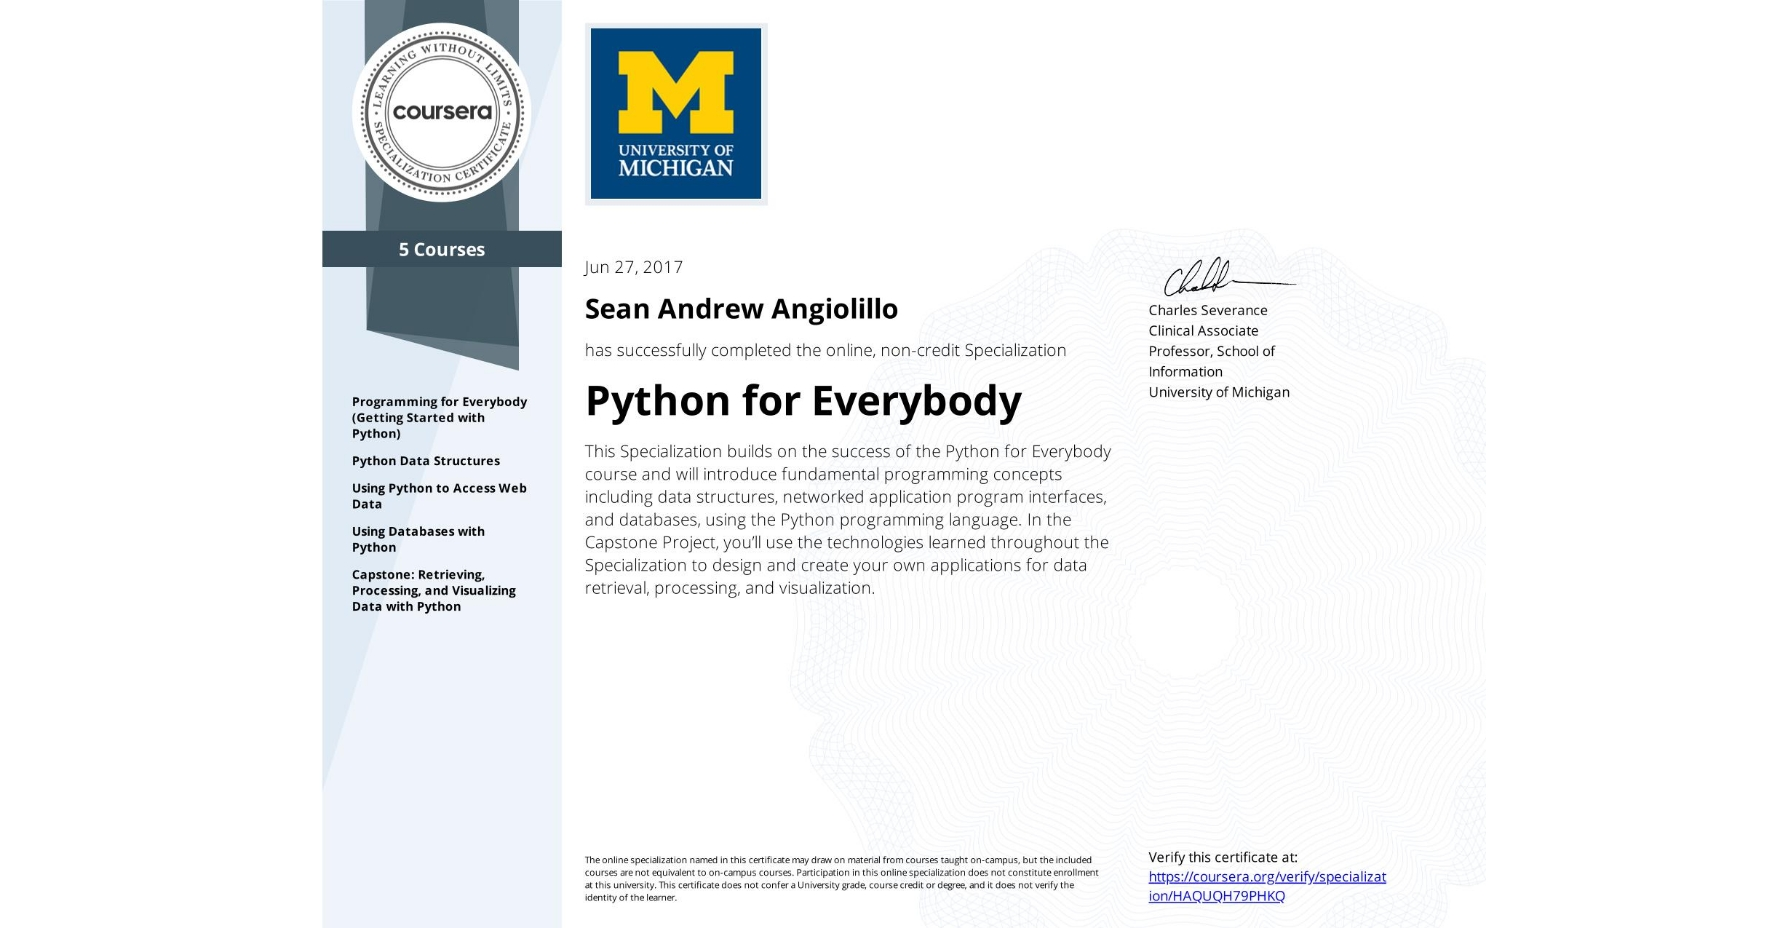 View certificate for Sean Andrew Angiolillo, Python for Everybody, offered through Coursera. This Specialization builds on the success of the Python for Everybody course and will introduce fundamental programming concepts including data structures, networked application program interfaces, and databases, using the Python programming language. In the Capstone Project, you'll use the technologies learned throughout the Specialization to design and create your own applications for data retrieval, processing, and visualization.